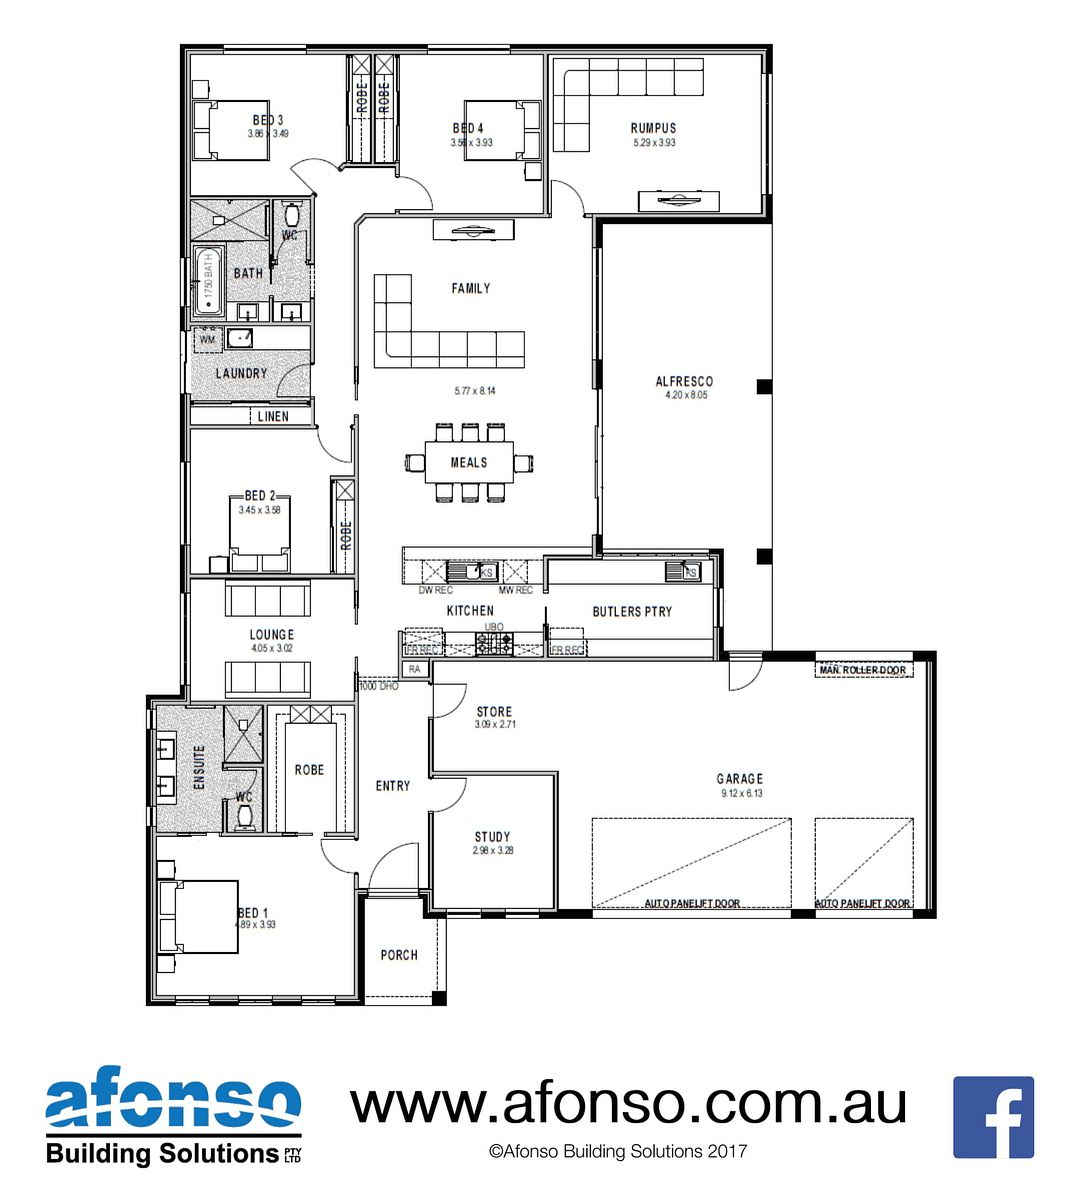 Afonso Building Solutions On Instagram Floorplan Friday Our Chifley 363 Is A 4 Bedroom 3 Living Home Plus Study It Features Floor Plans Building Study